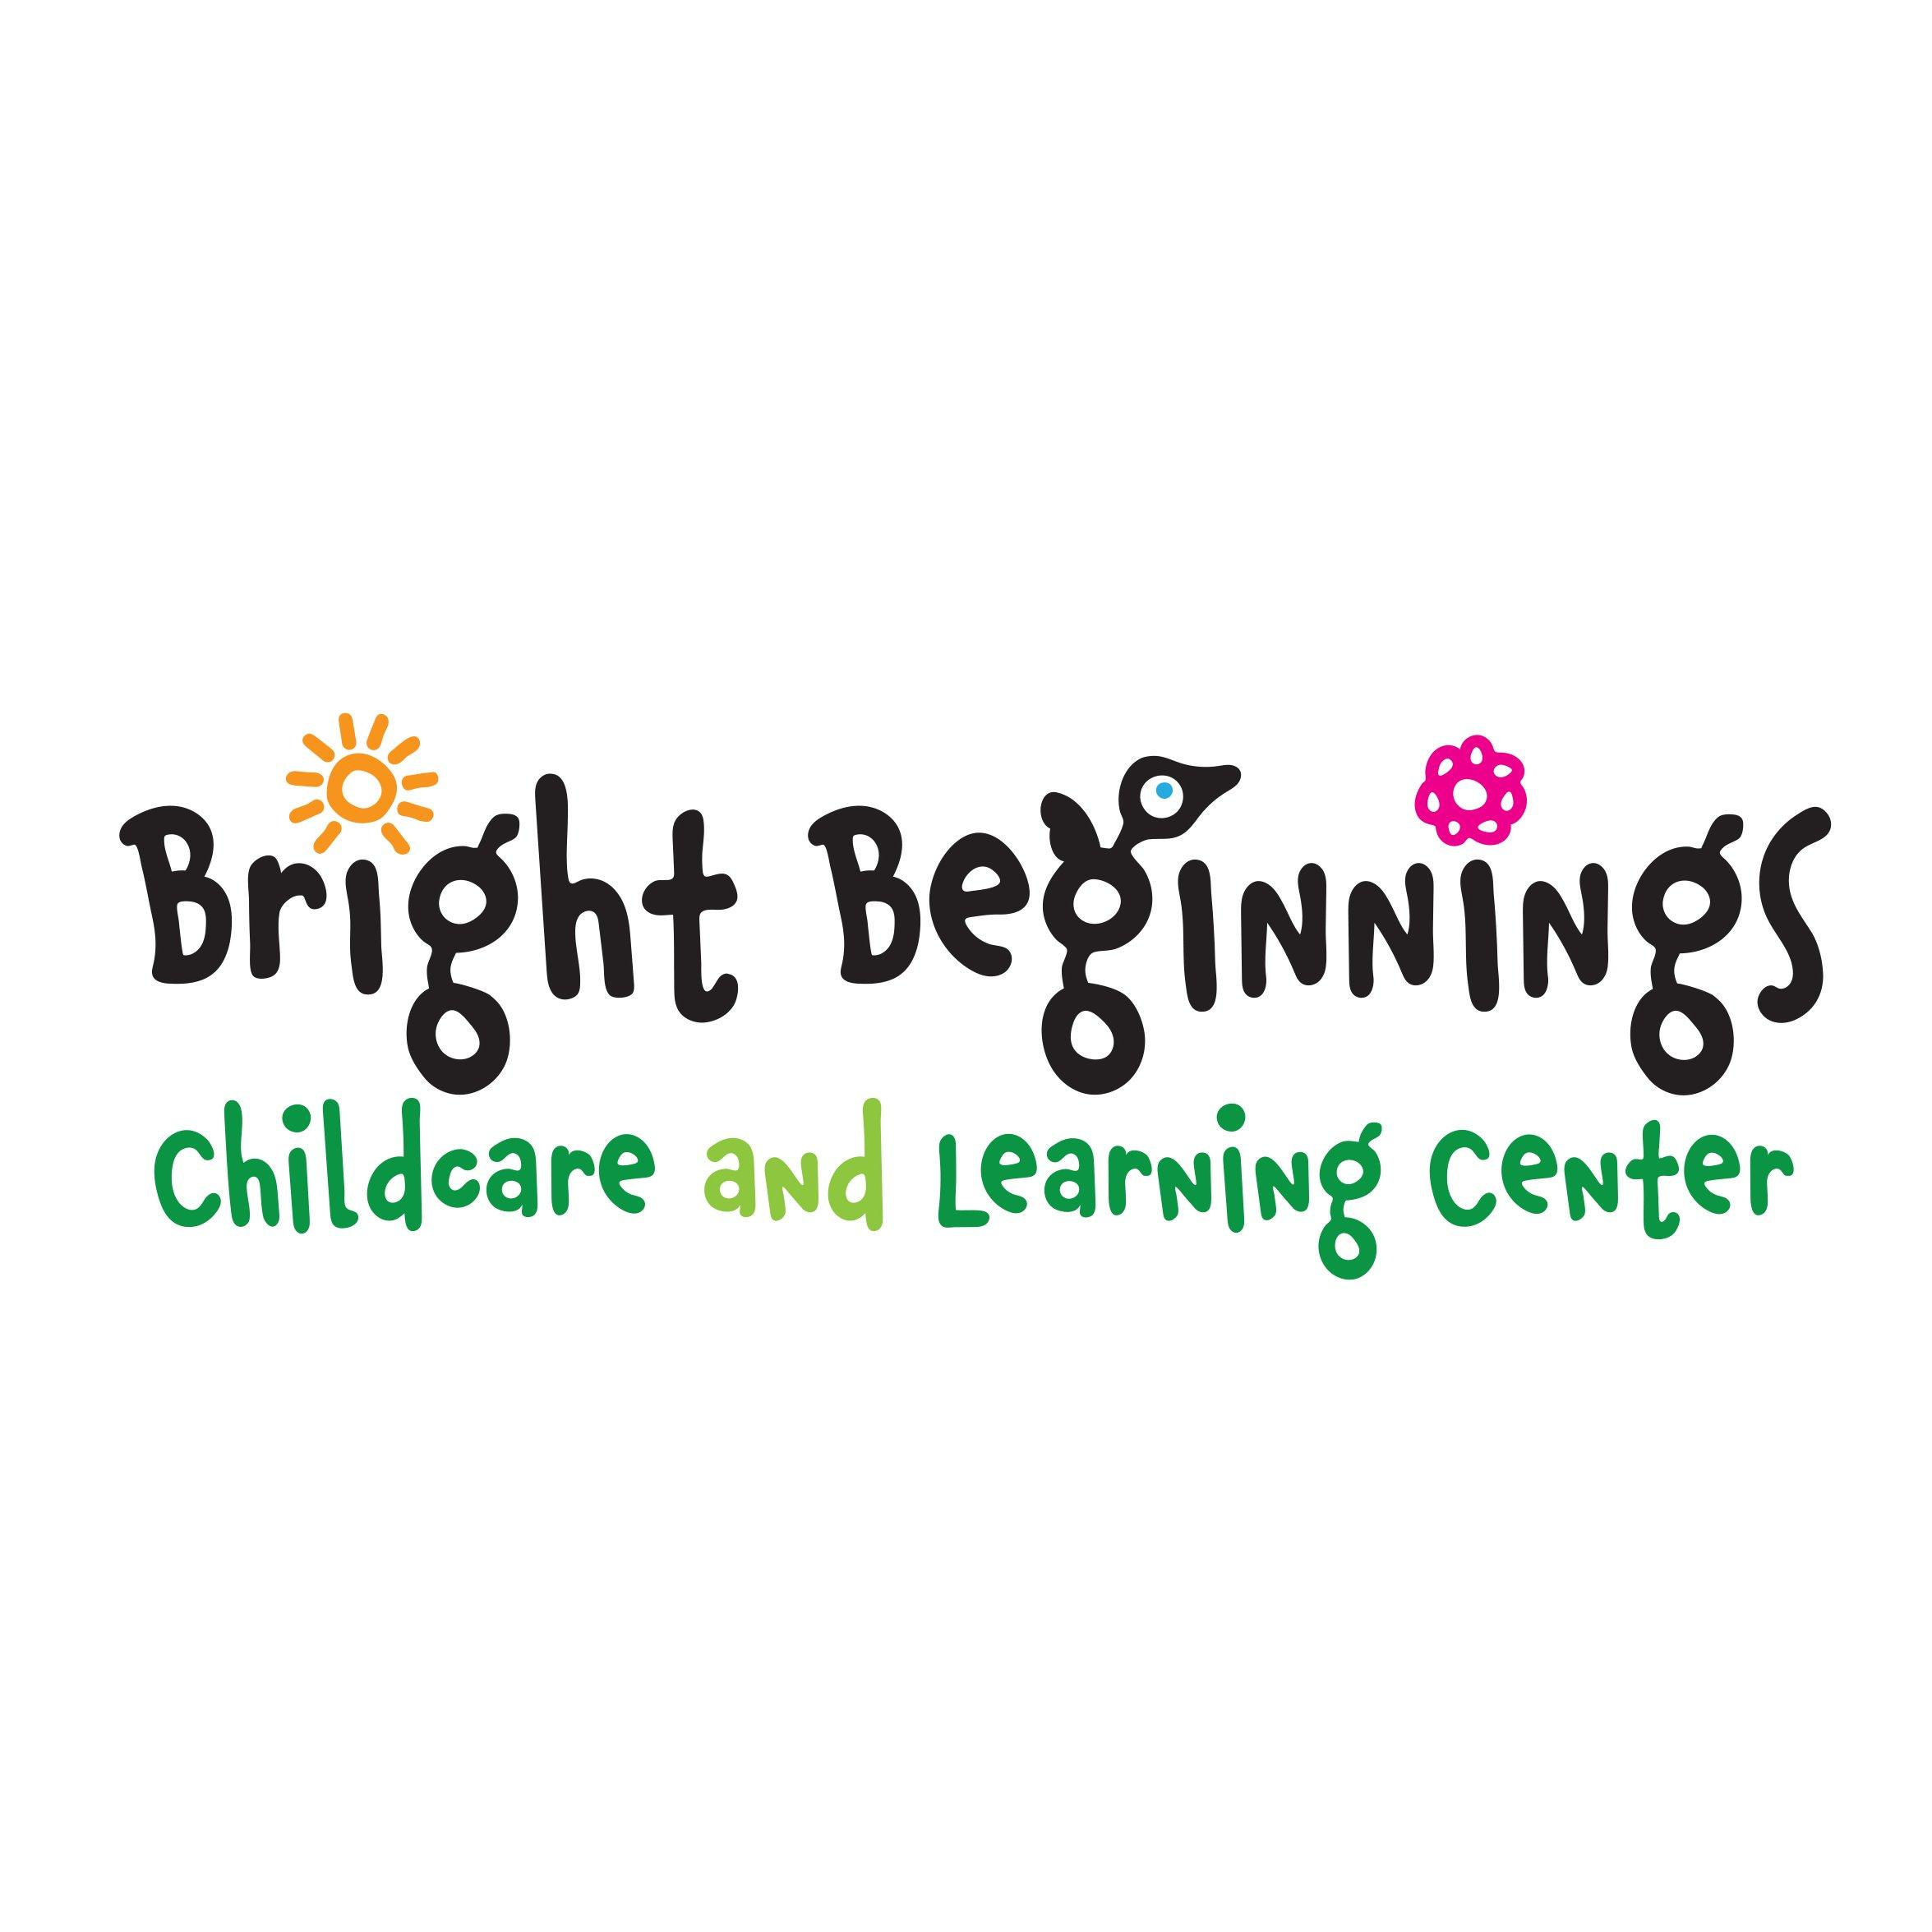 Bright Beginnings Childcare & Learning Center